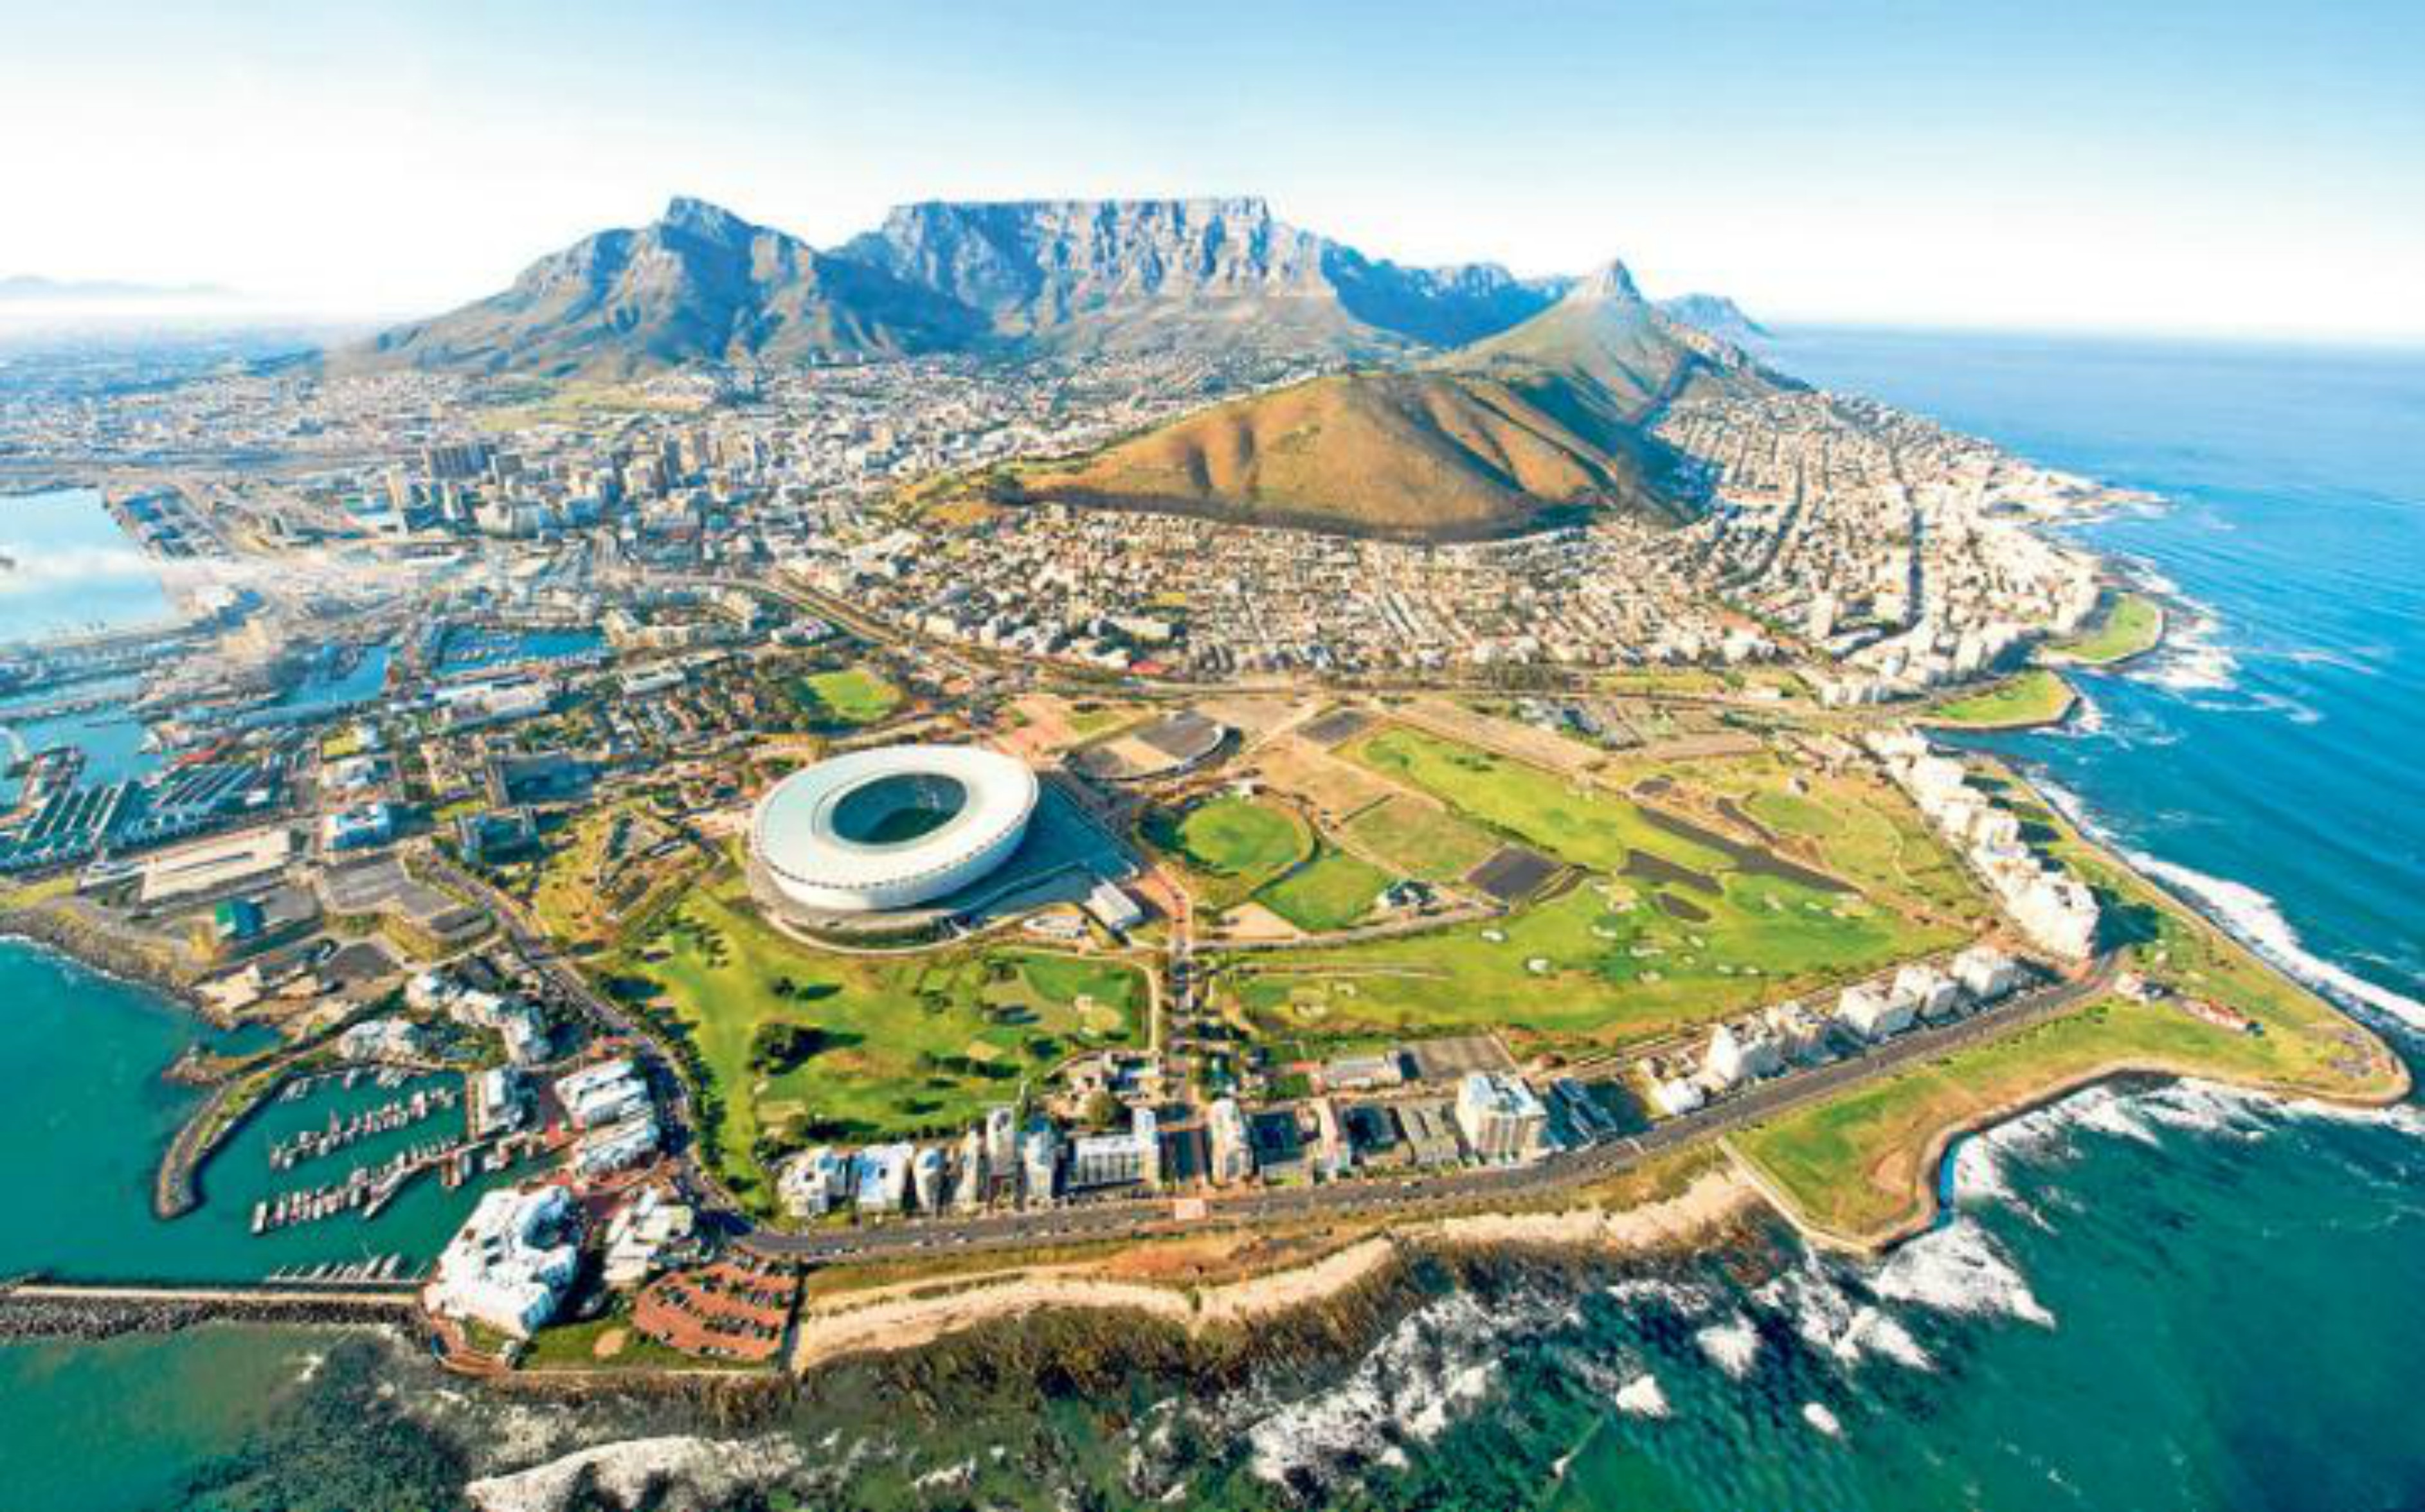 City Of Cape Town: Cape Town, South Africa Set To Run Out Of Water